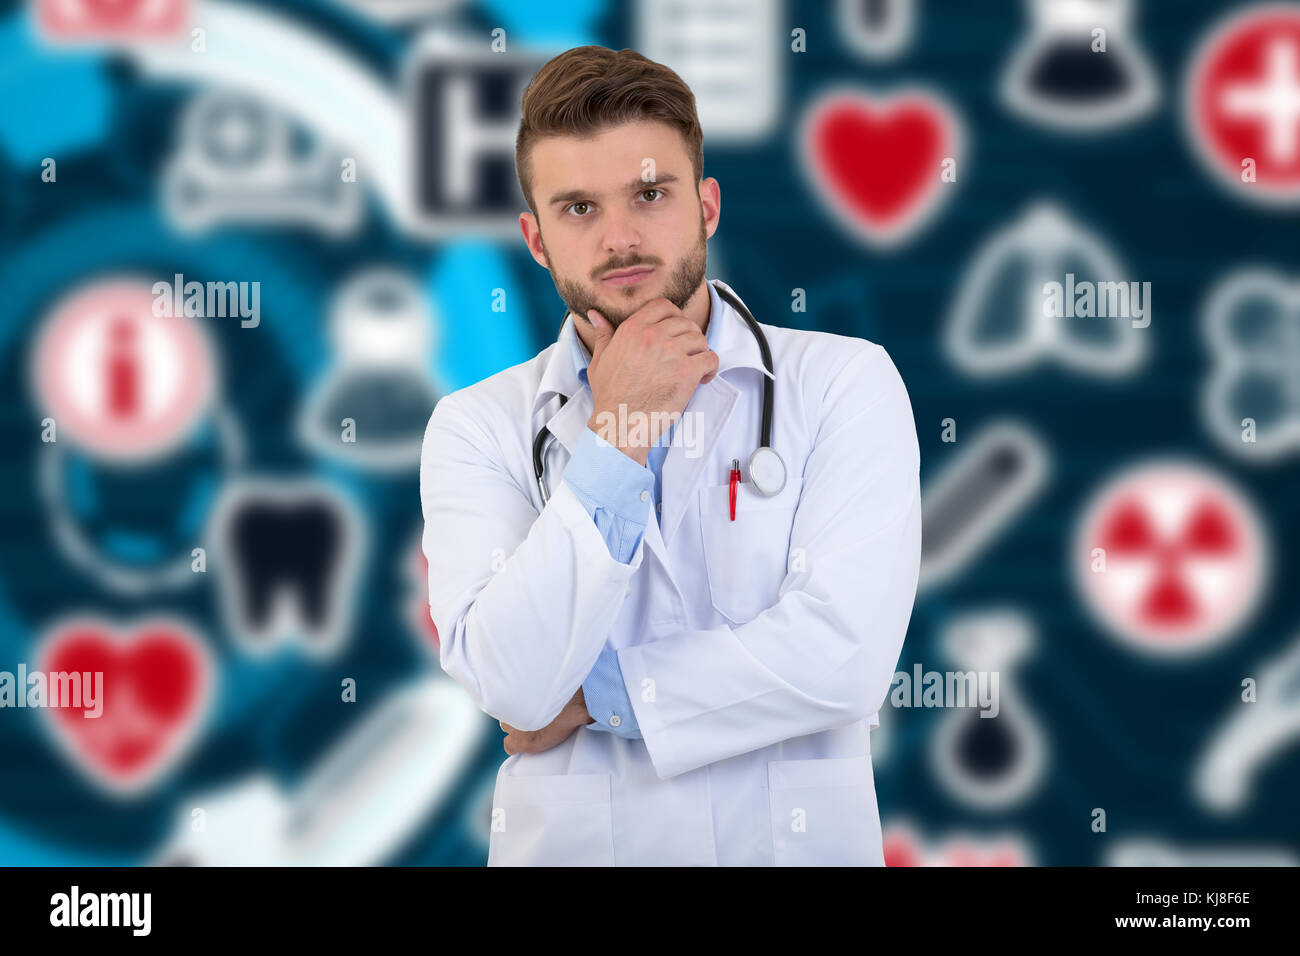 Portrait of confident young medical doctor on background with medical symbols. - Stock Image